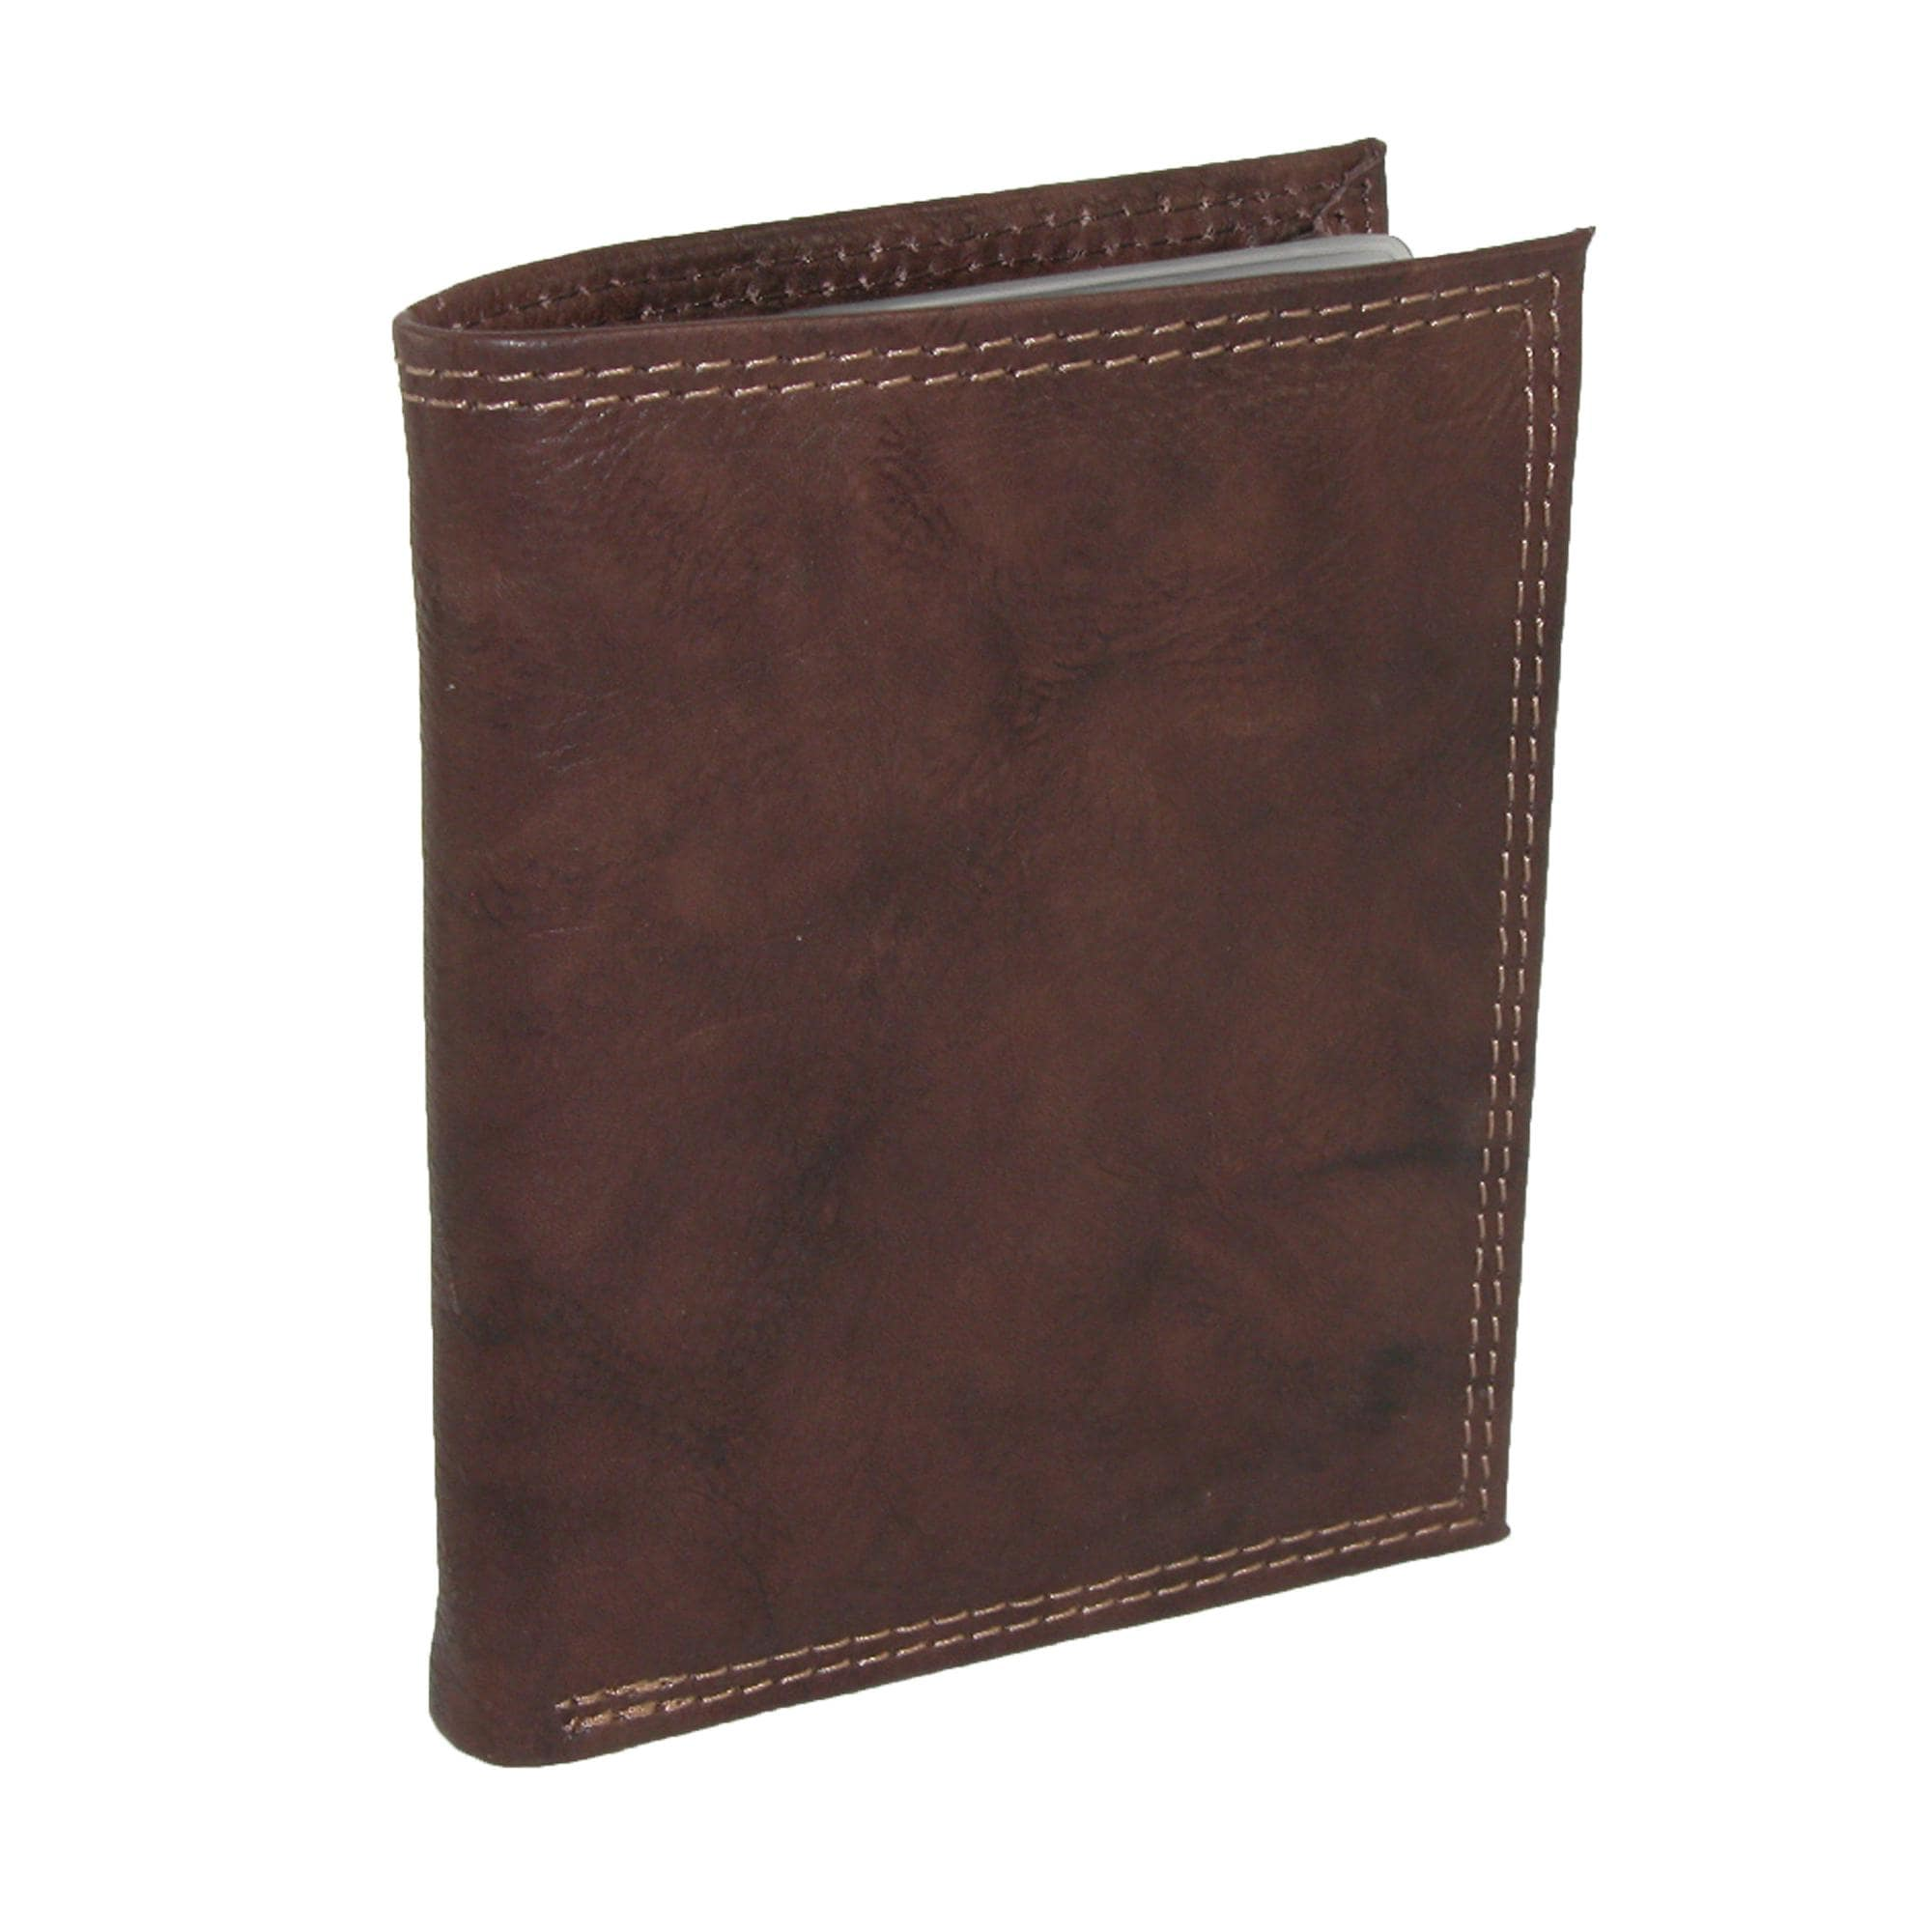 8d9fa8c2ff Buy Leather Men's Wallets Online at Overstock | Our Best Wallets Deals